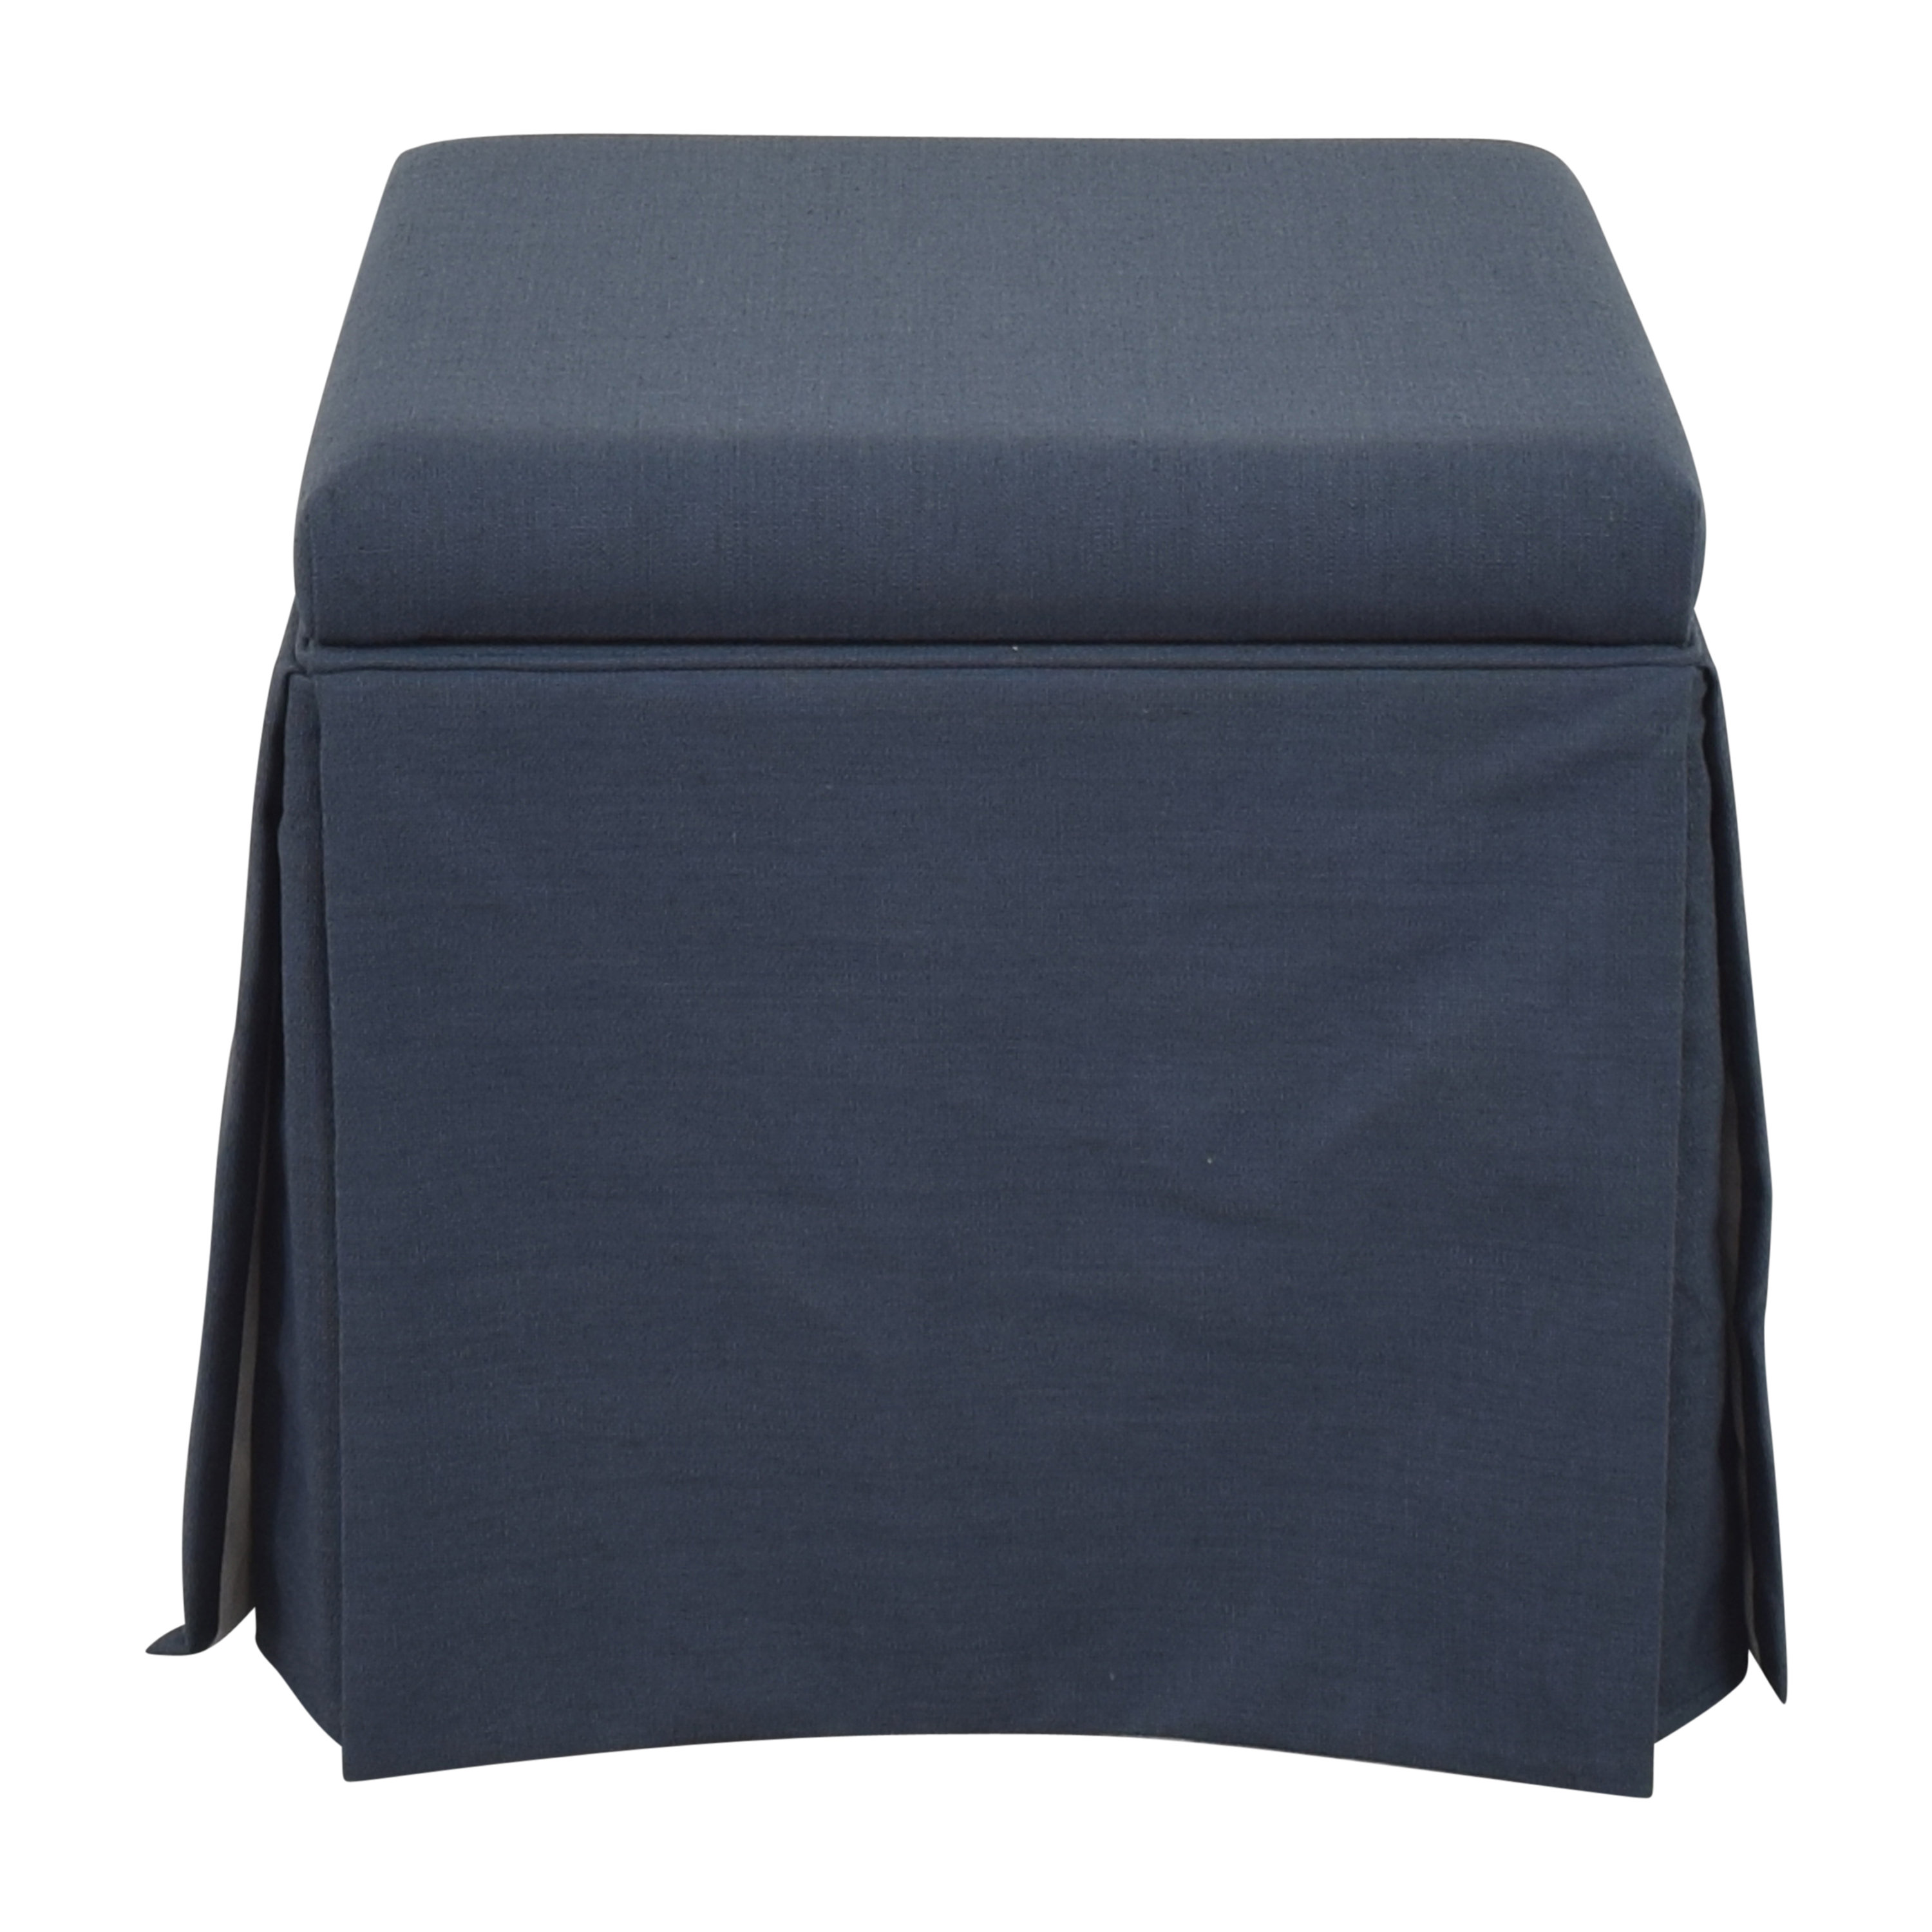 The Inside Skirted Storage Ottoman The Inside